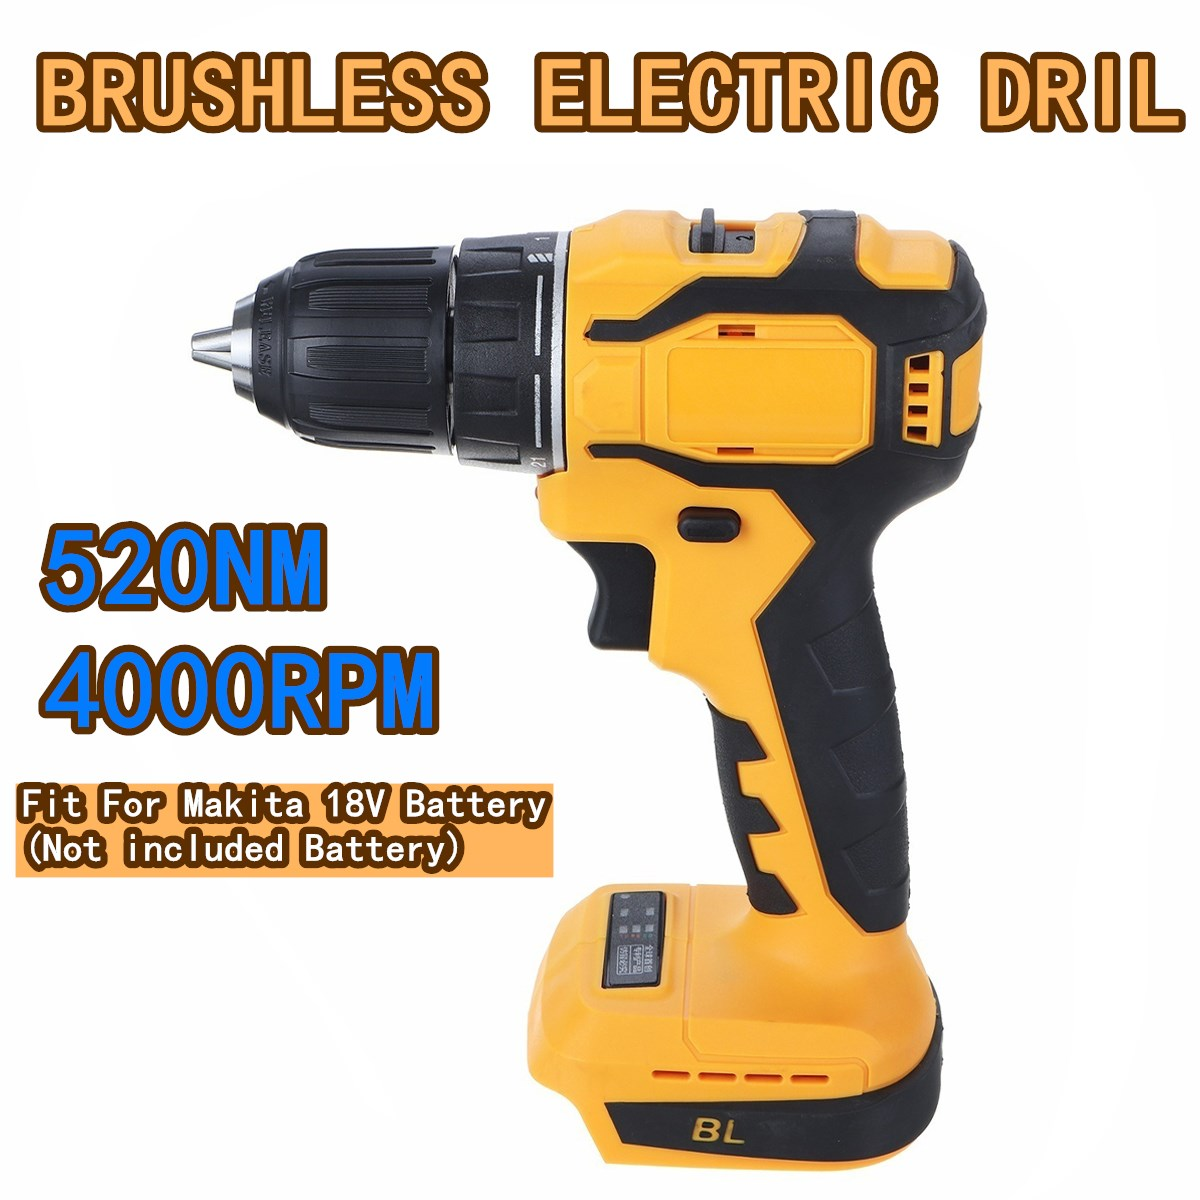 10mm Chuck Brushless Impact Drill 520N.m Cordless Electric Drill For Makita 18V Battery 4000RPM LED Light Power Drills|Electric Drills| - AliExpress